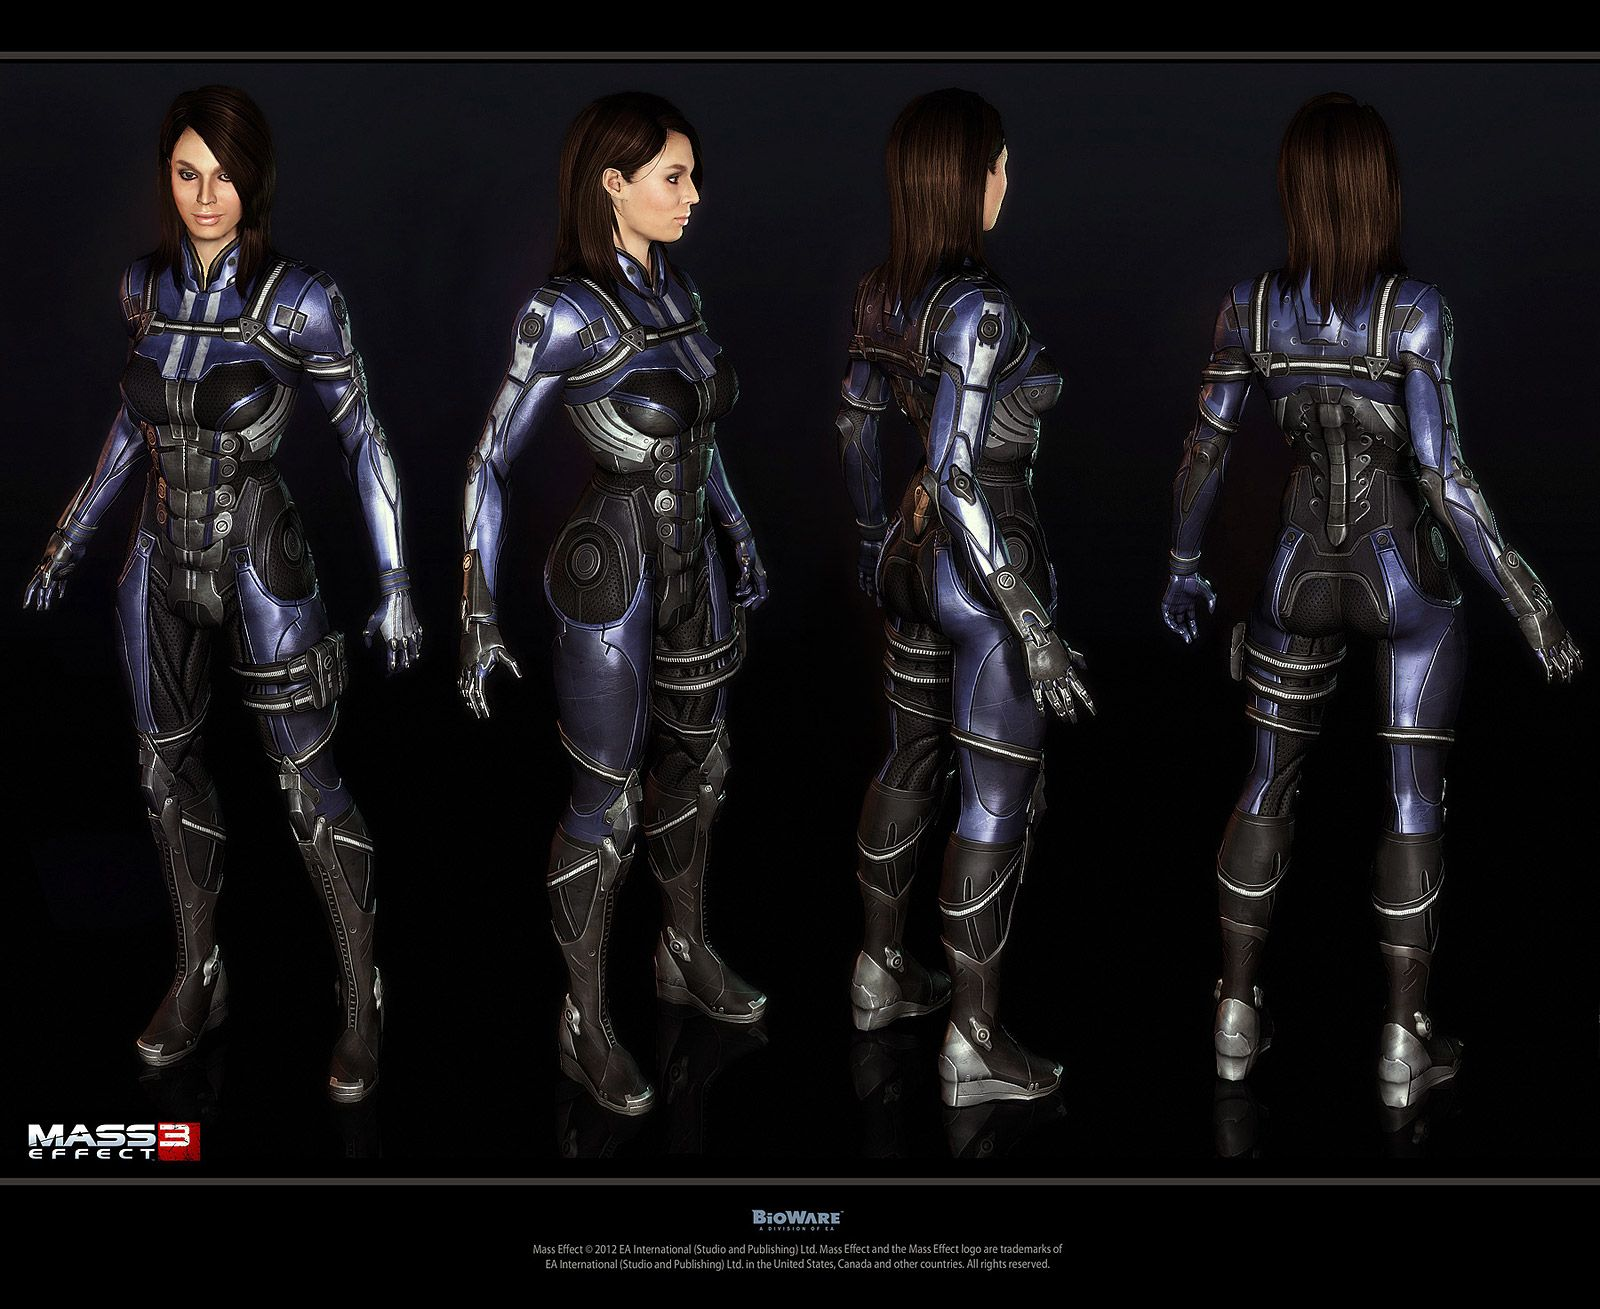 Jack mass effect 3 outfit